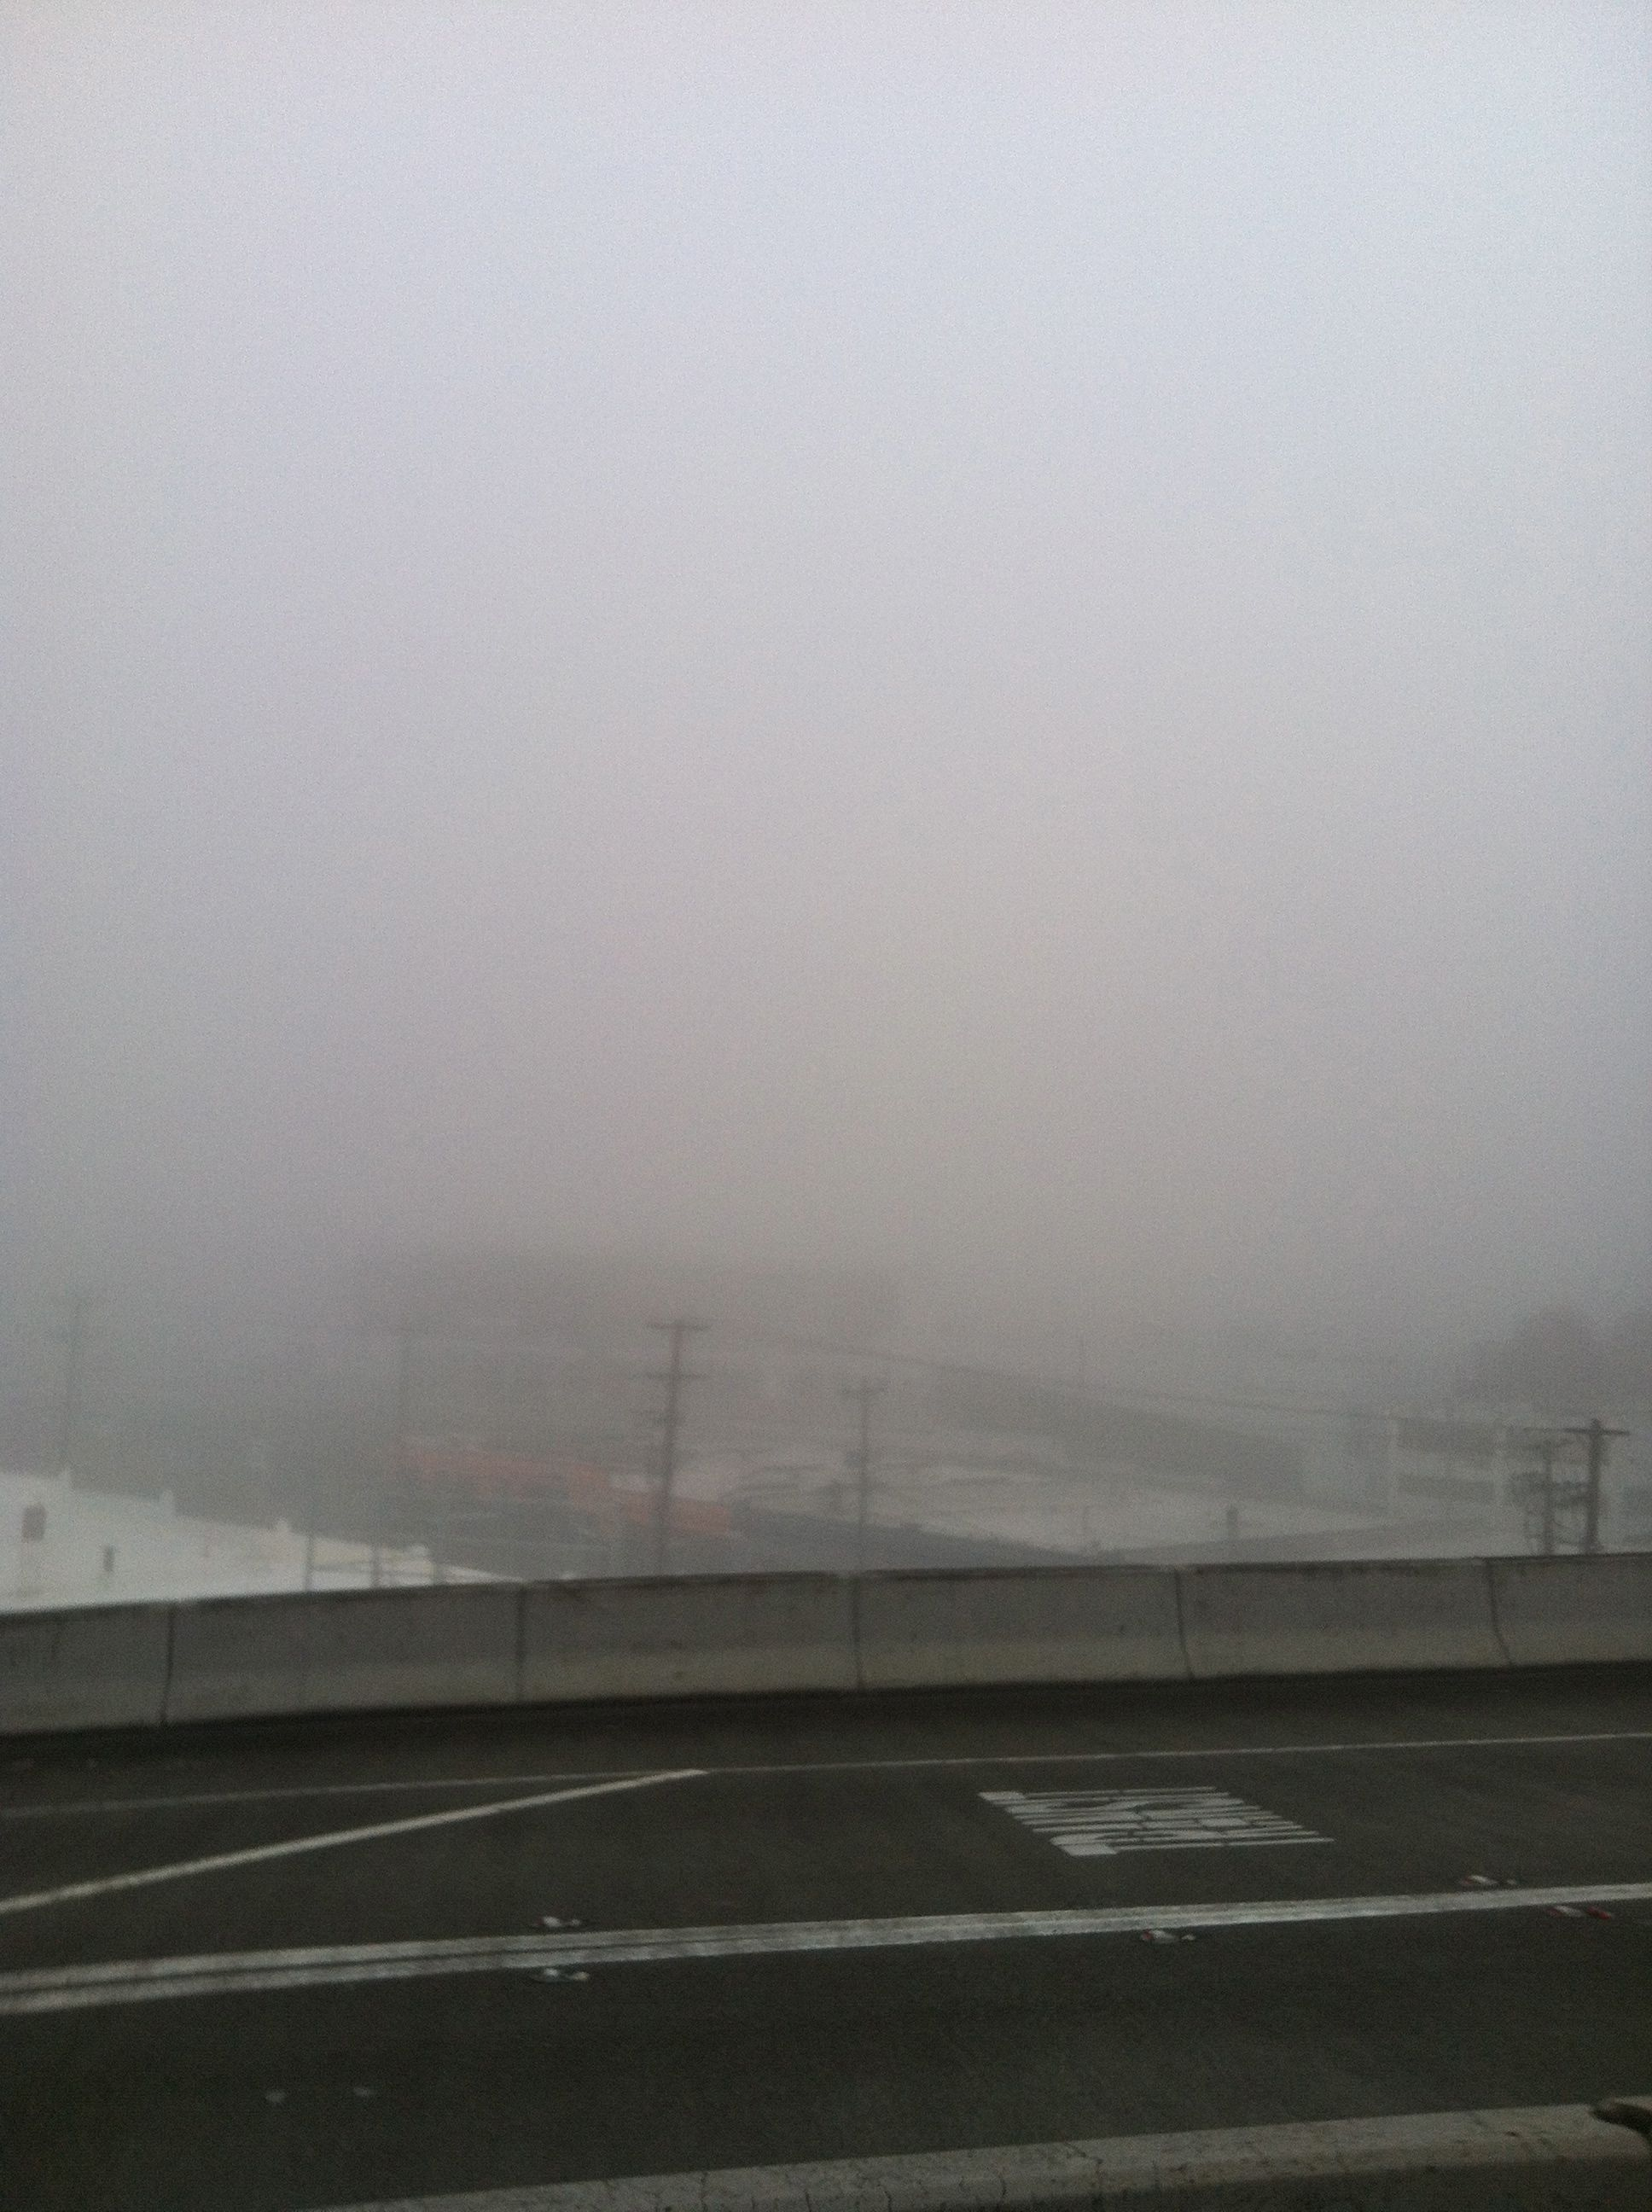 This has pretty much nothing to do with this post, but it was awesomely foggy while I was in Seattle (on main half marathon day).